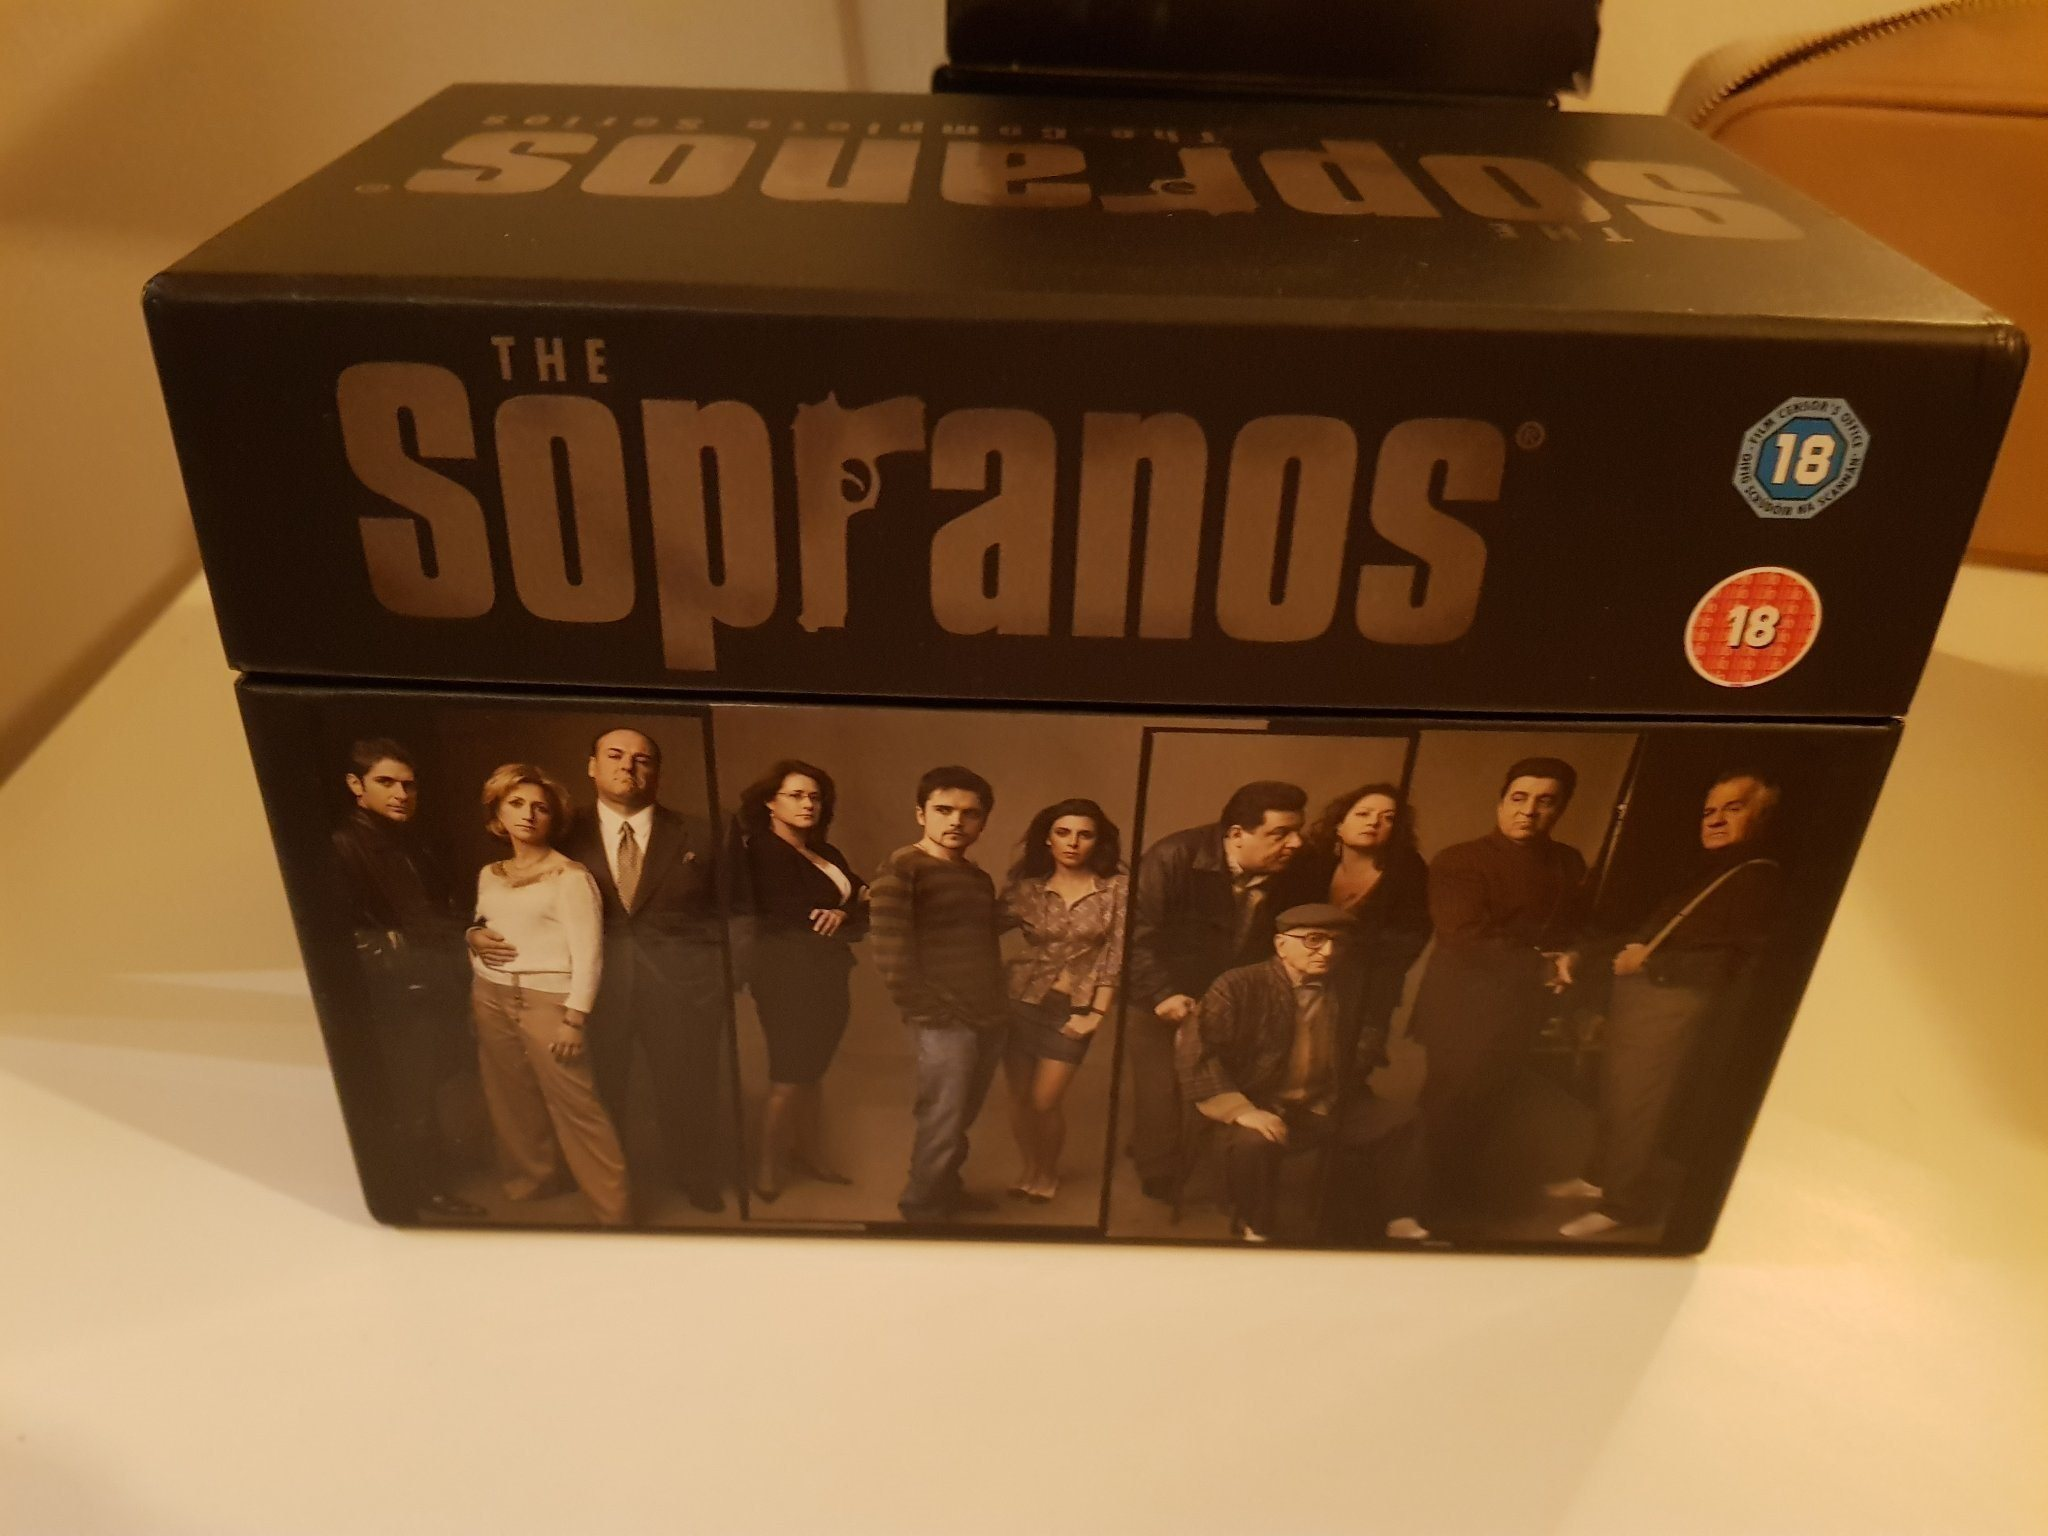 The Sopranos - alla säsonger Box Set